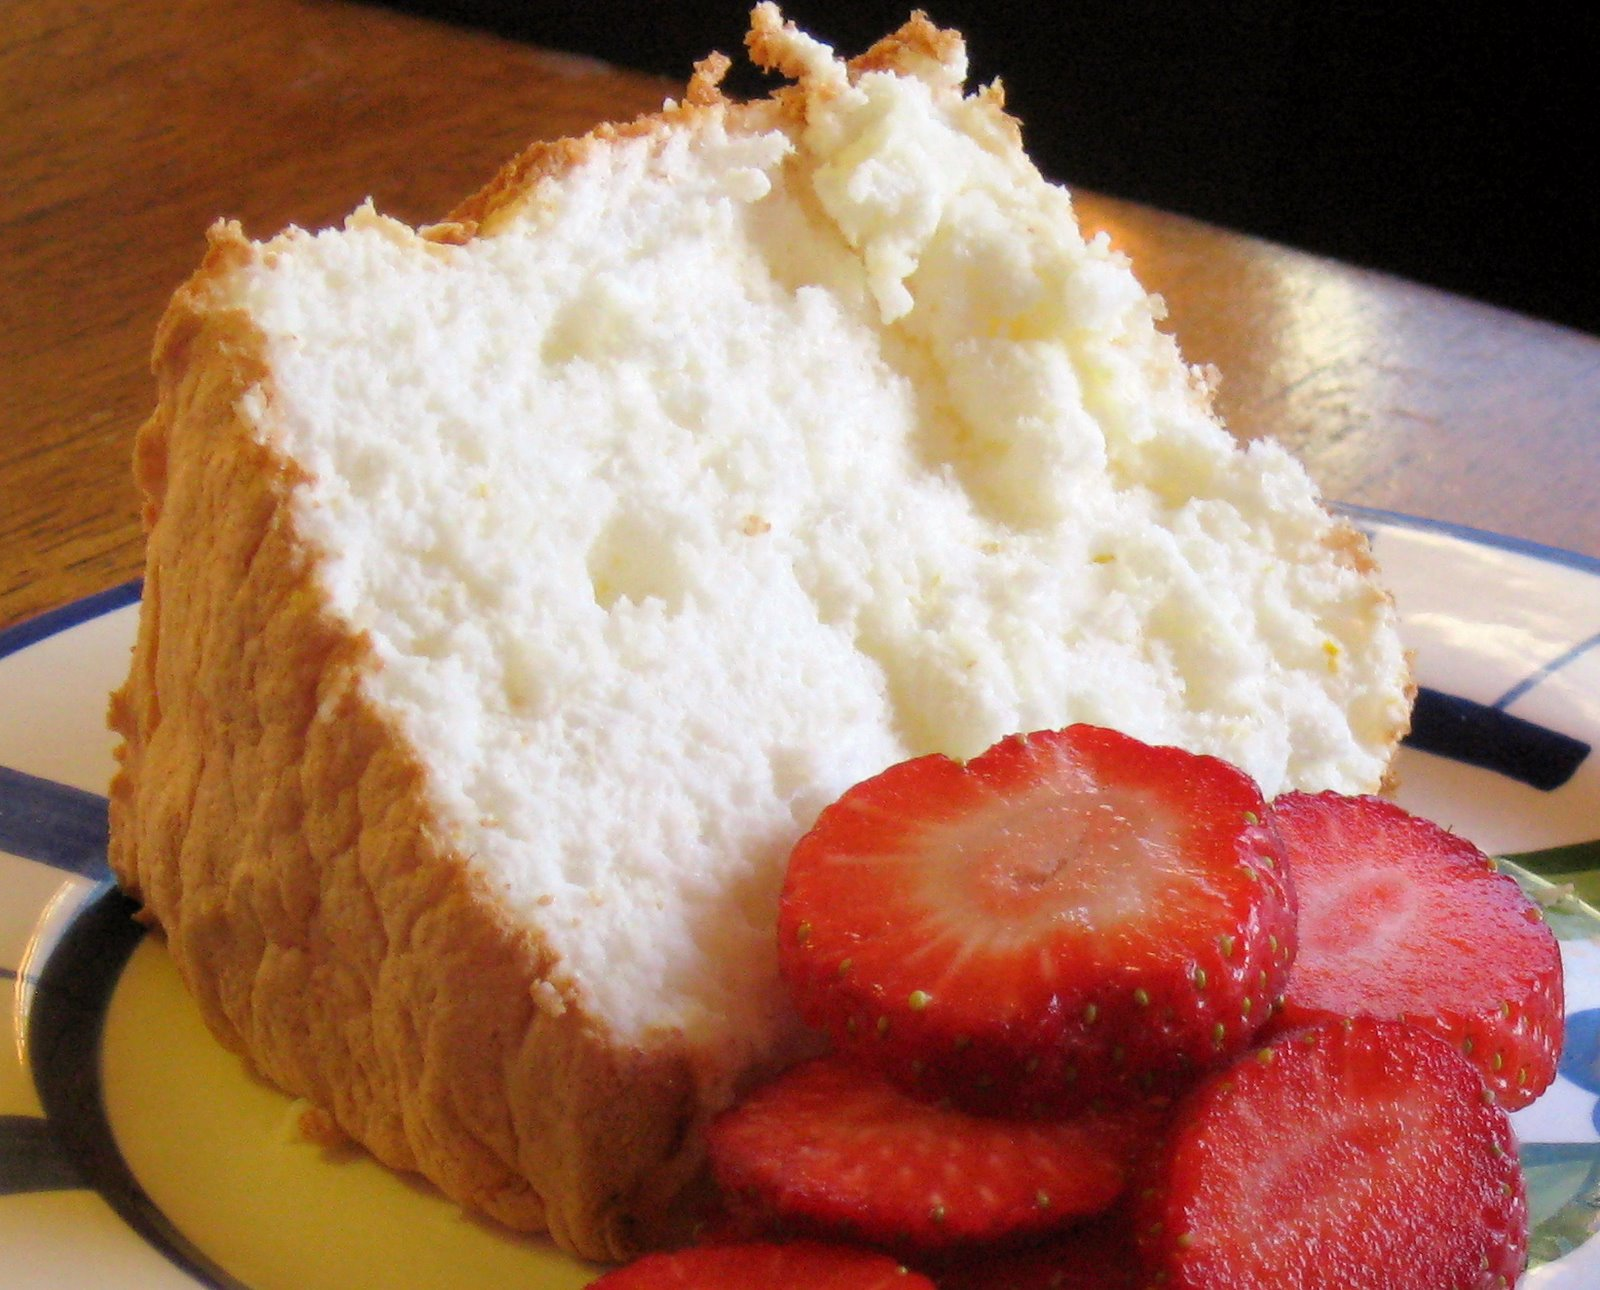 Gluten free lemon angel food cake recipe day 1 forumfinder